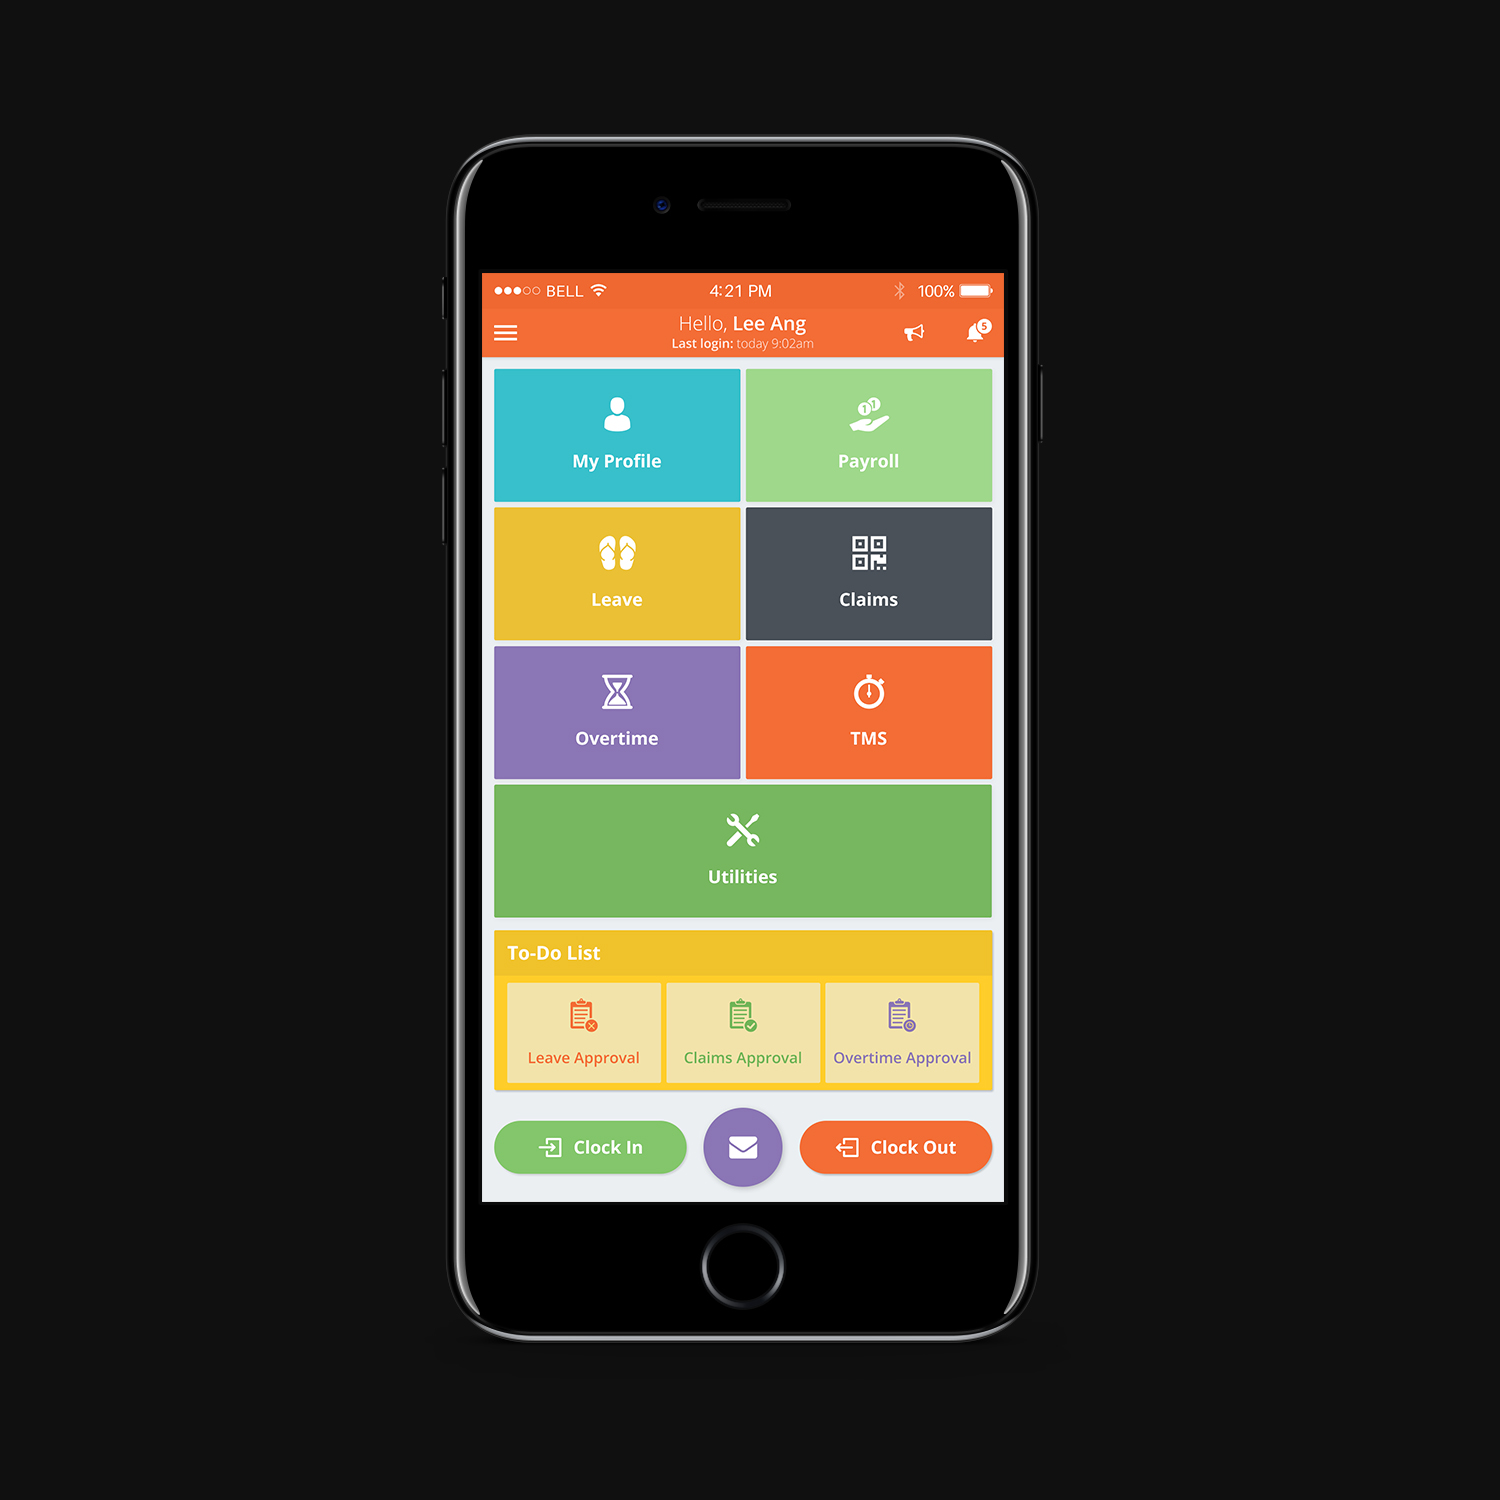 Mobile App Home Screen Redesign: Bold, Traditional App Design For A Company By Manarpan189